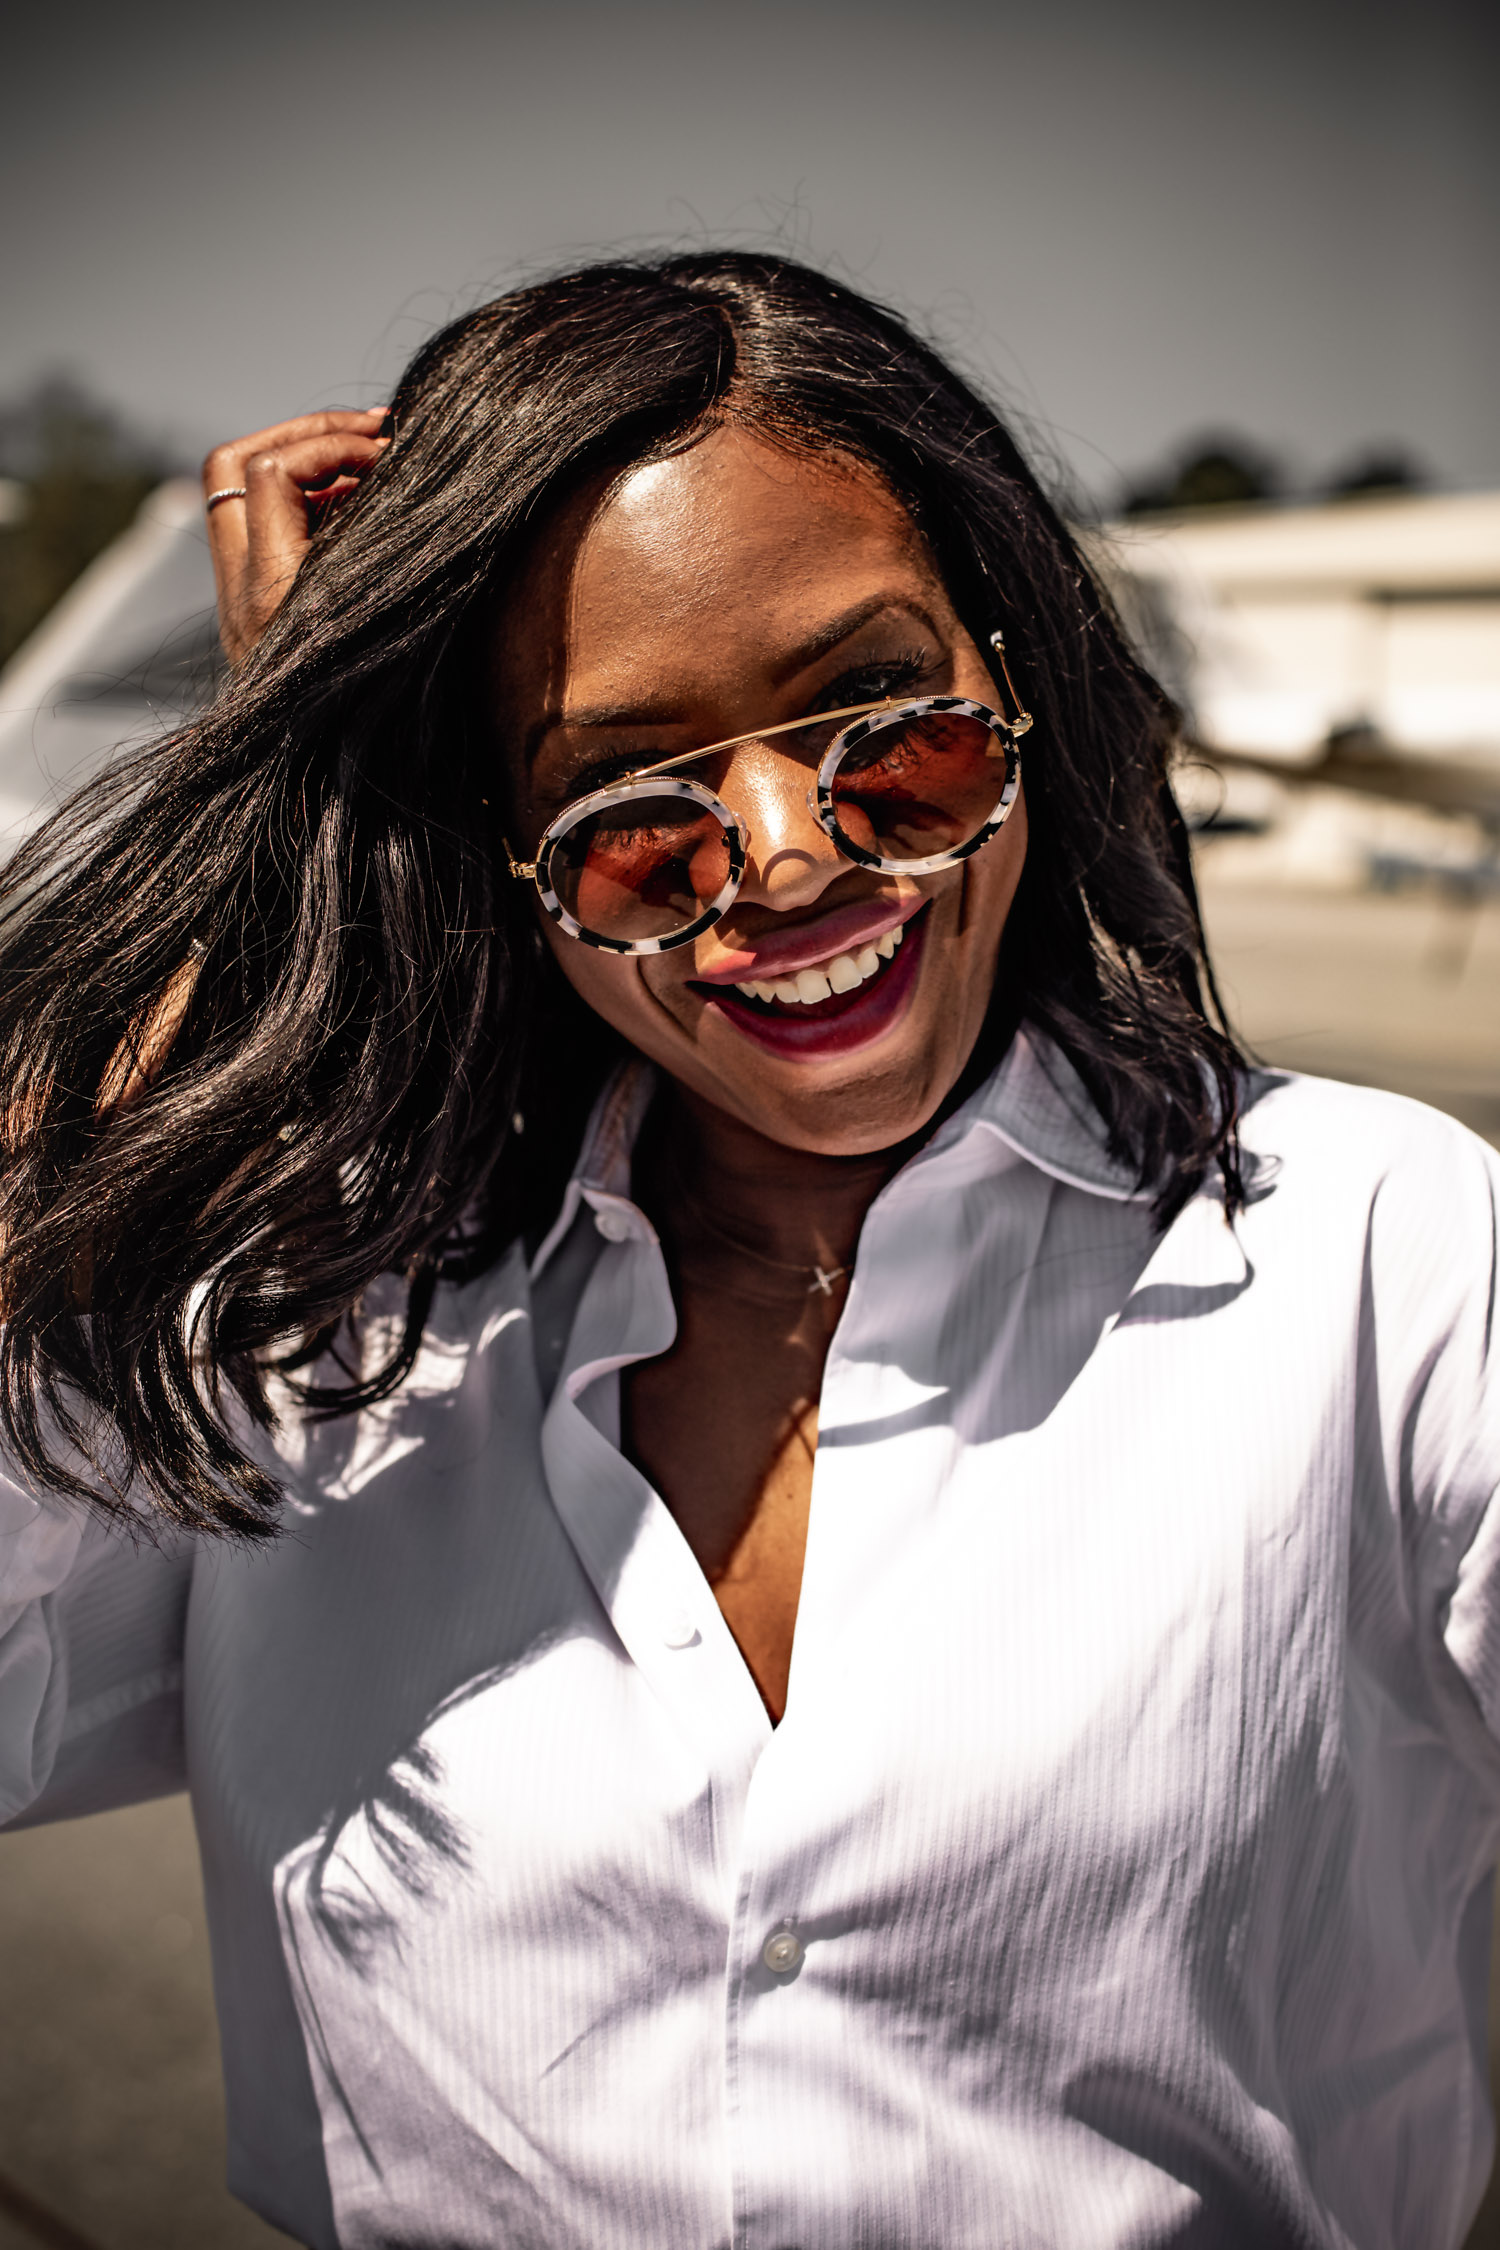 Atlanta fashion bloggers Monica Awe-Etuk wearing the top 6 sunglasses trends of the season wearing round krewe sunglasses